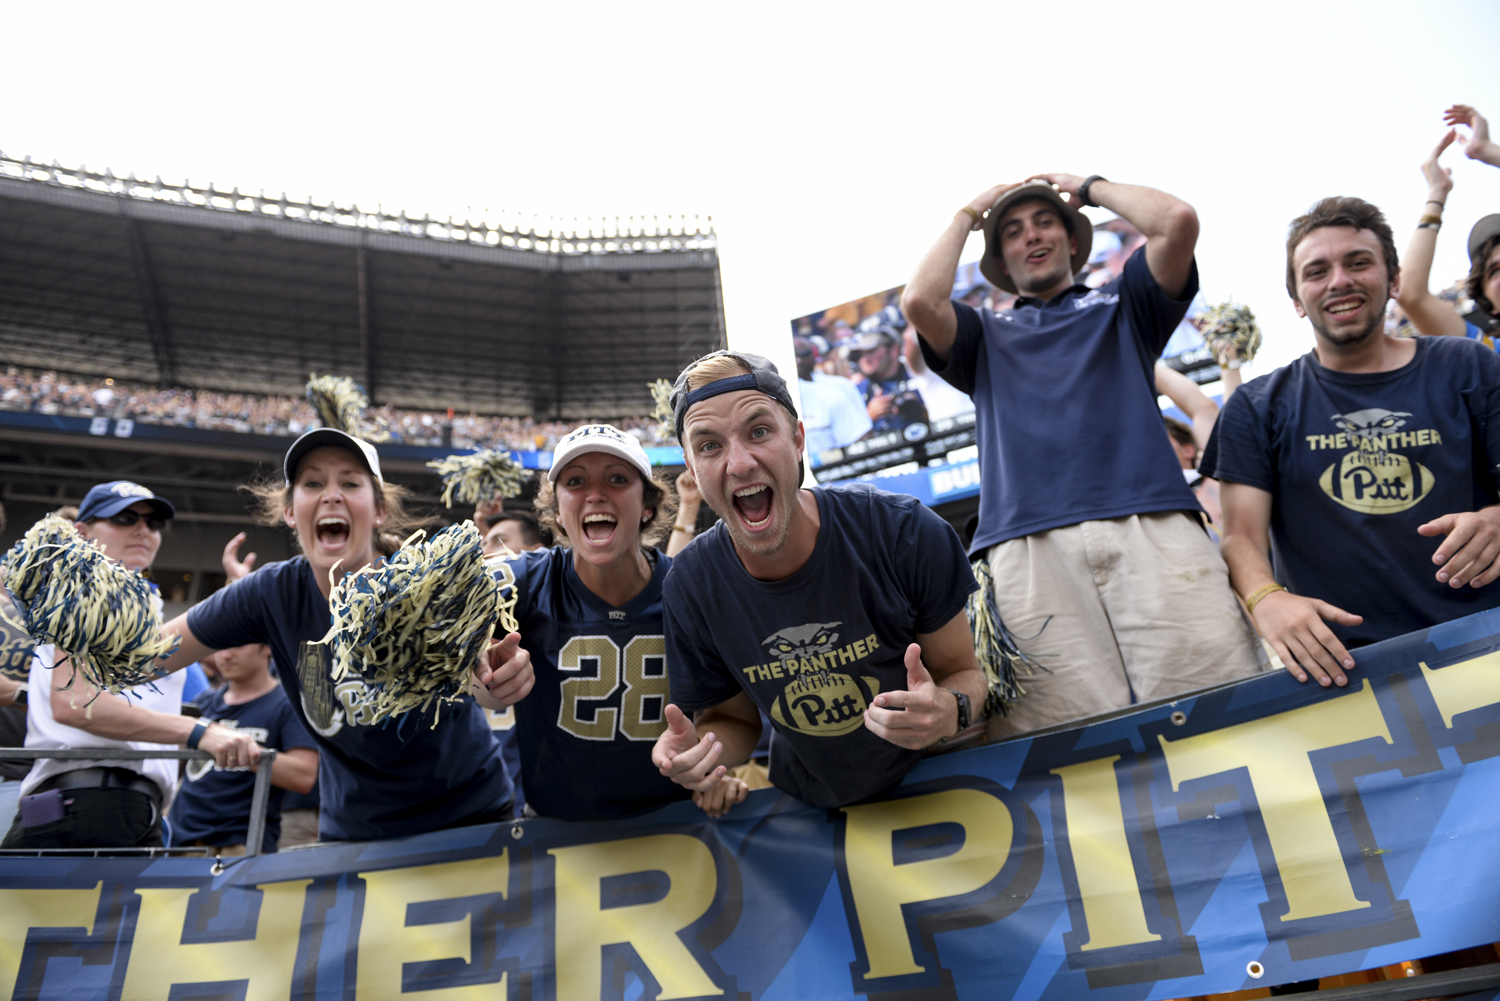 Fans cheer in the stands after Pitt wins the 2016 rivalry game against Penn State.